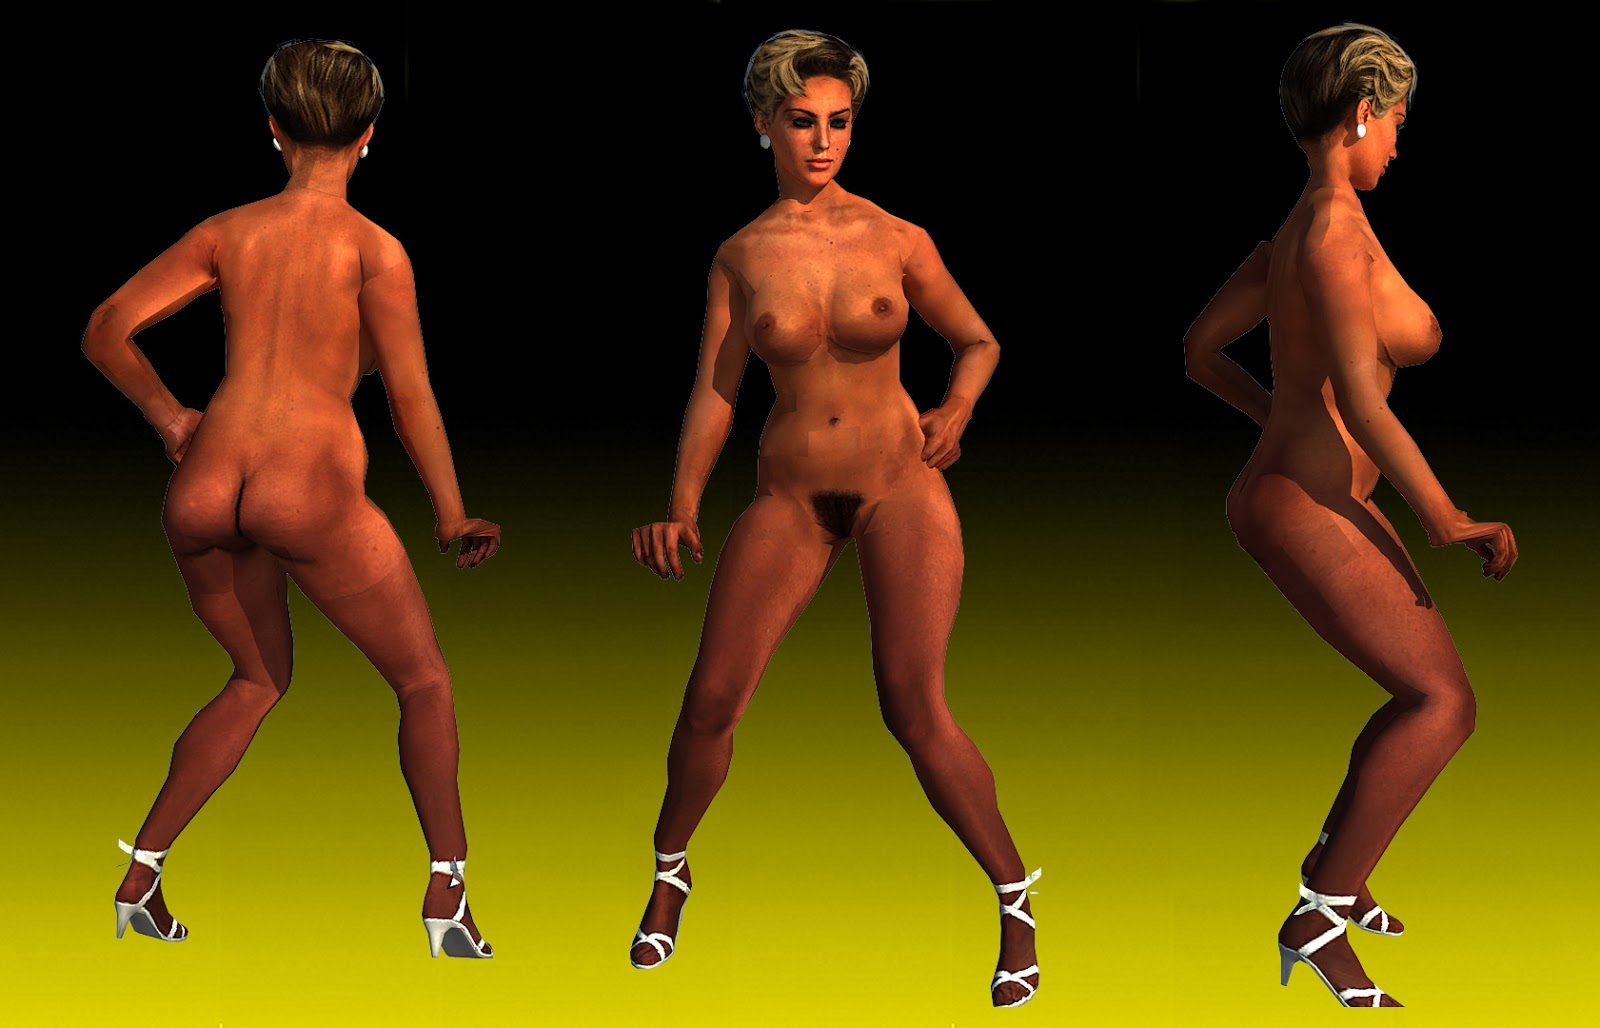 Gh2 nude character skins cartoon photos